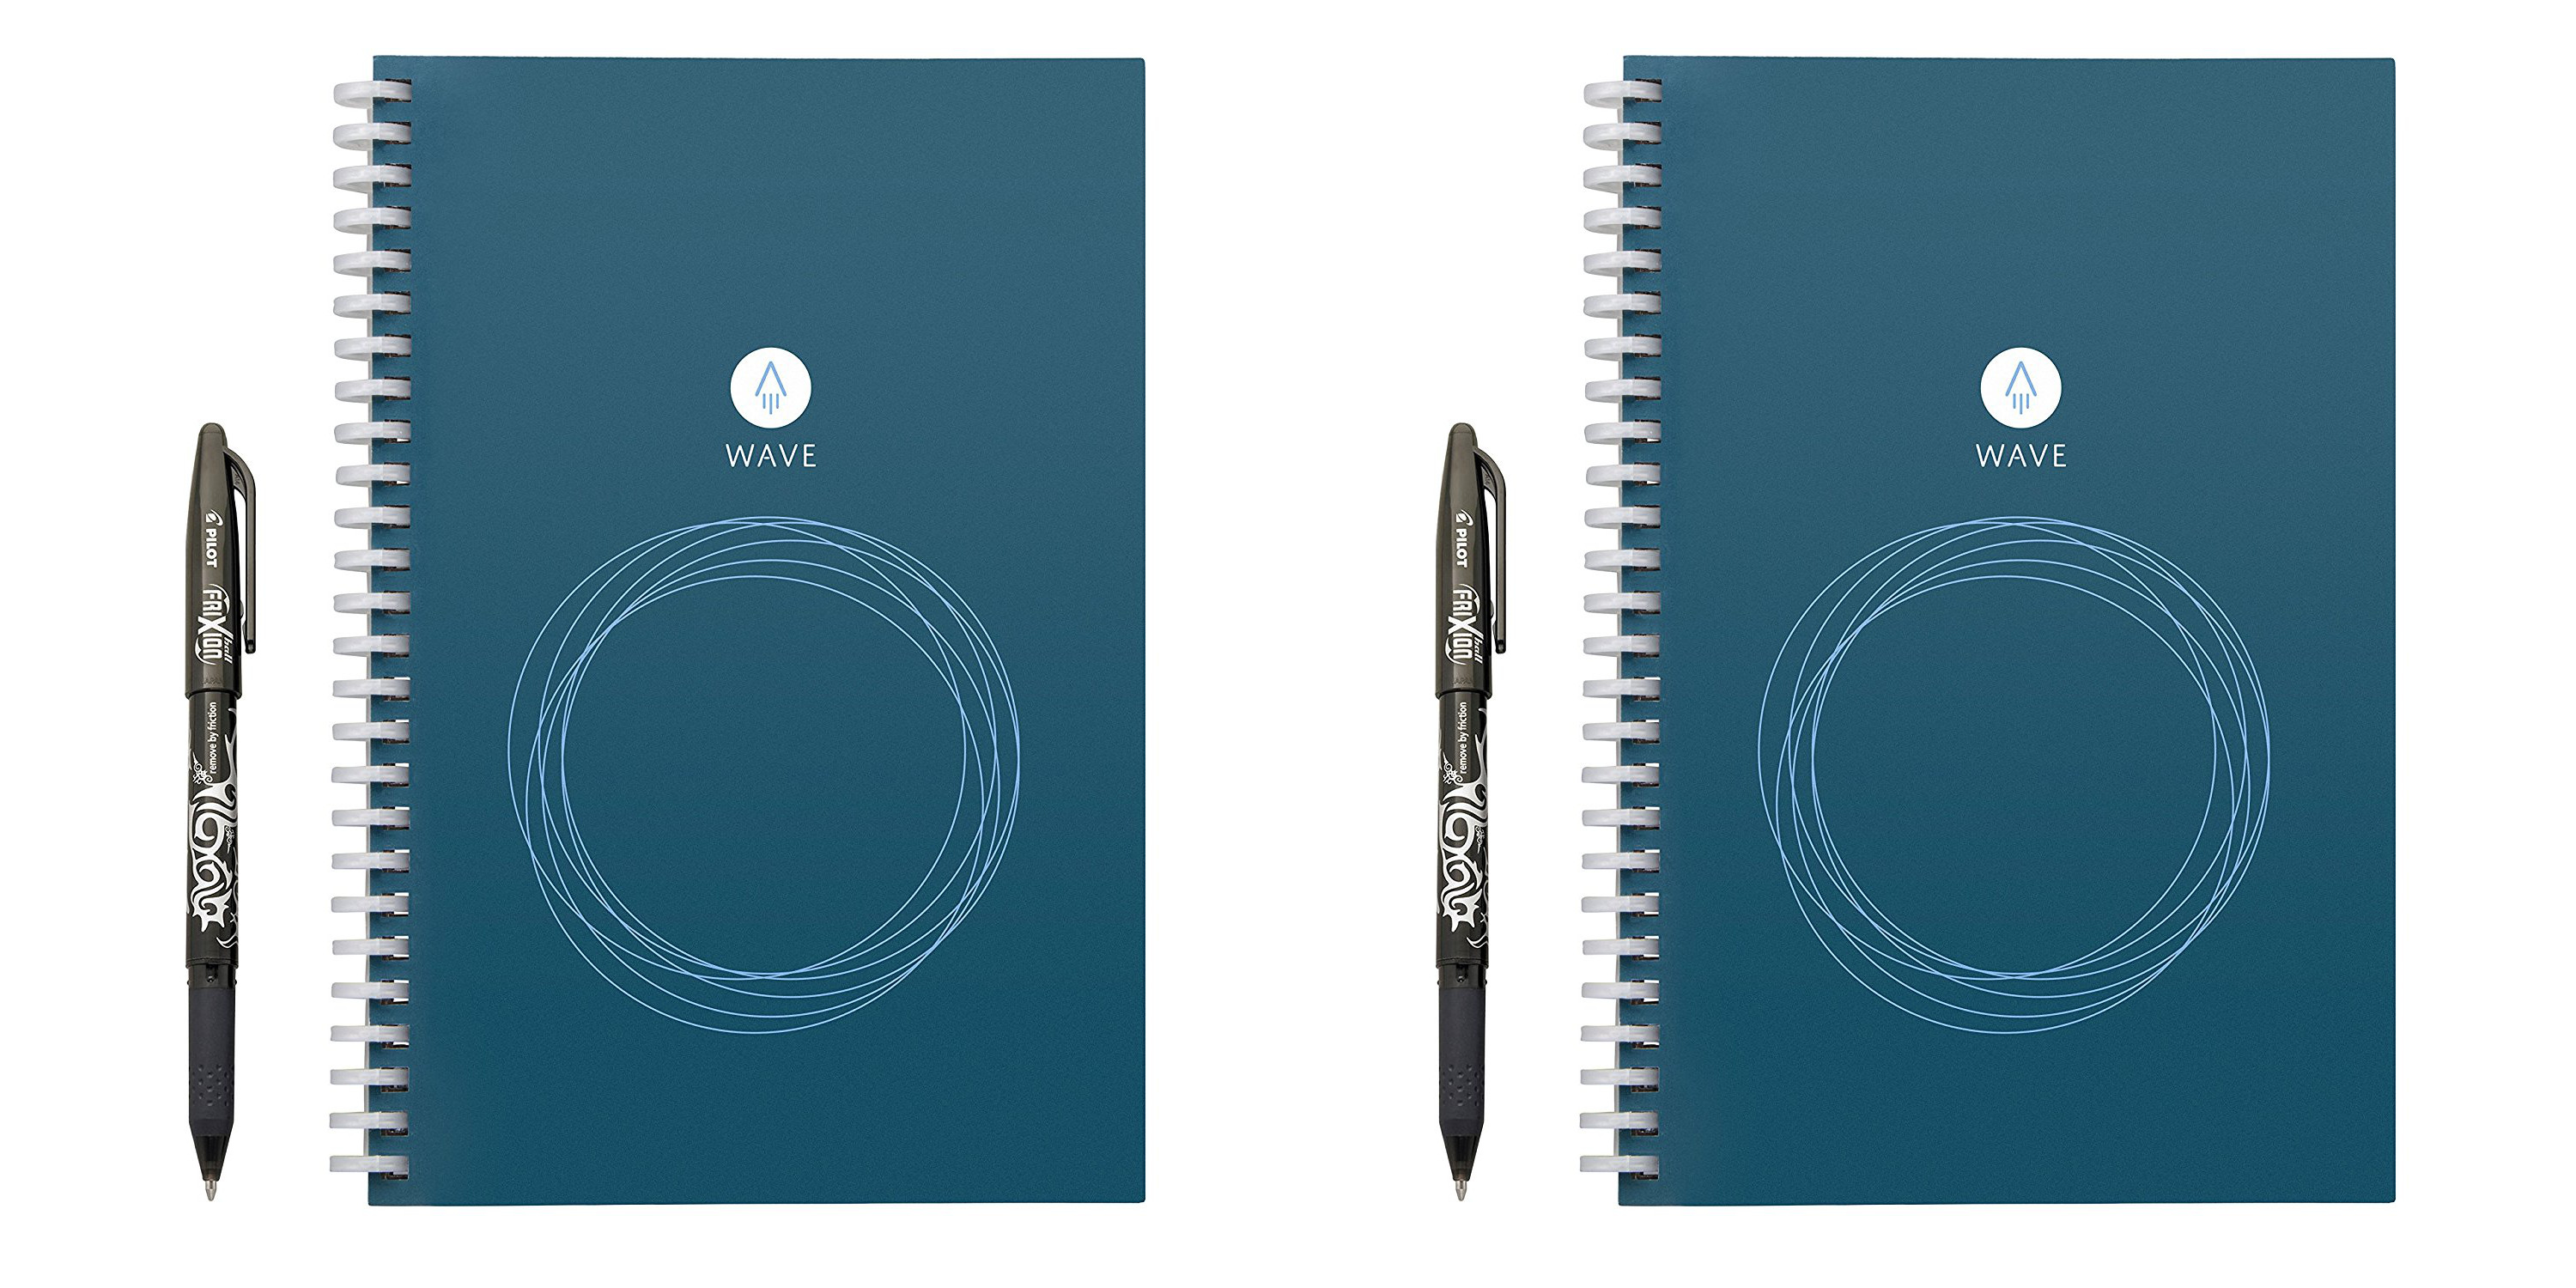 Rocketbook Wave Smart Notebook for iOS/Android at $20 shipped (Reg. $28)